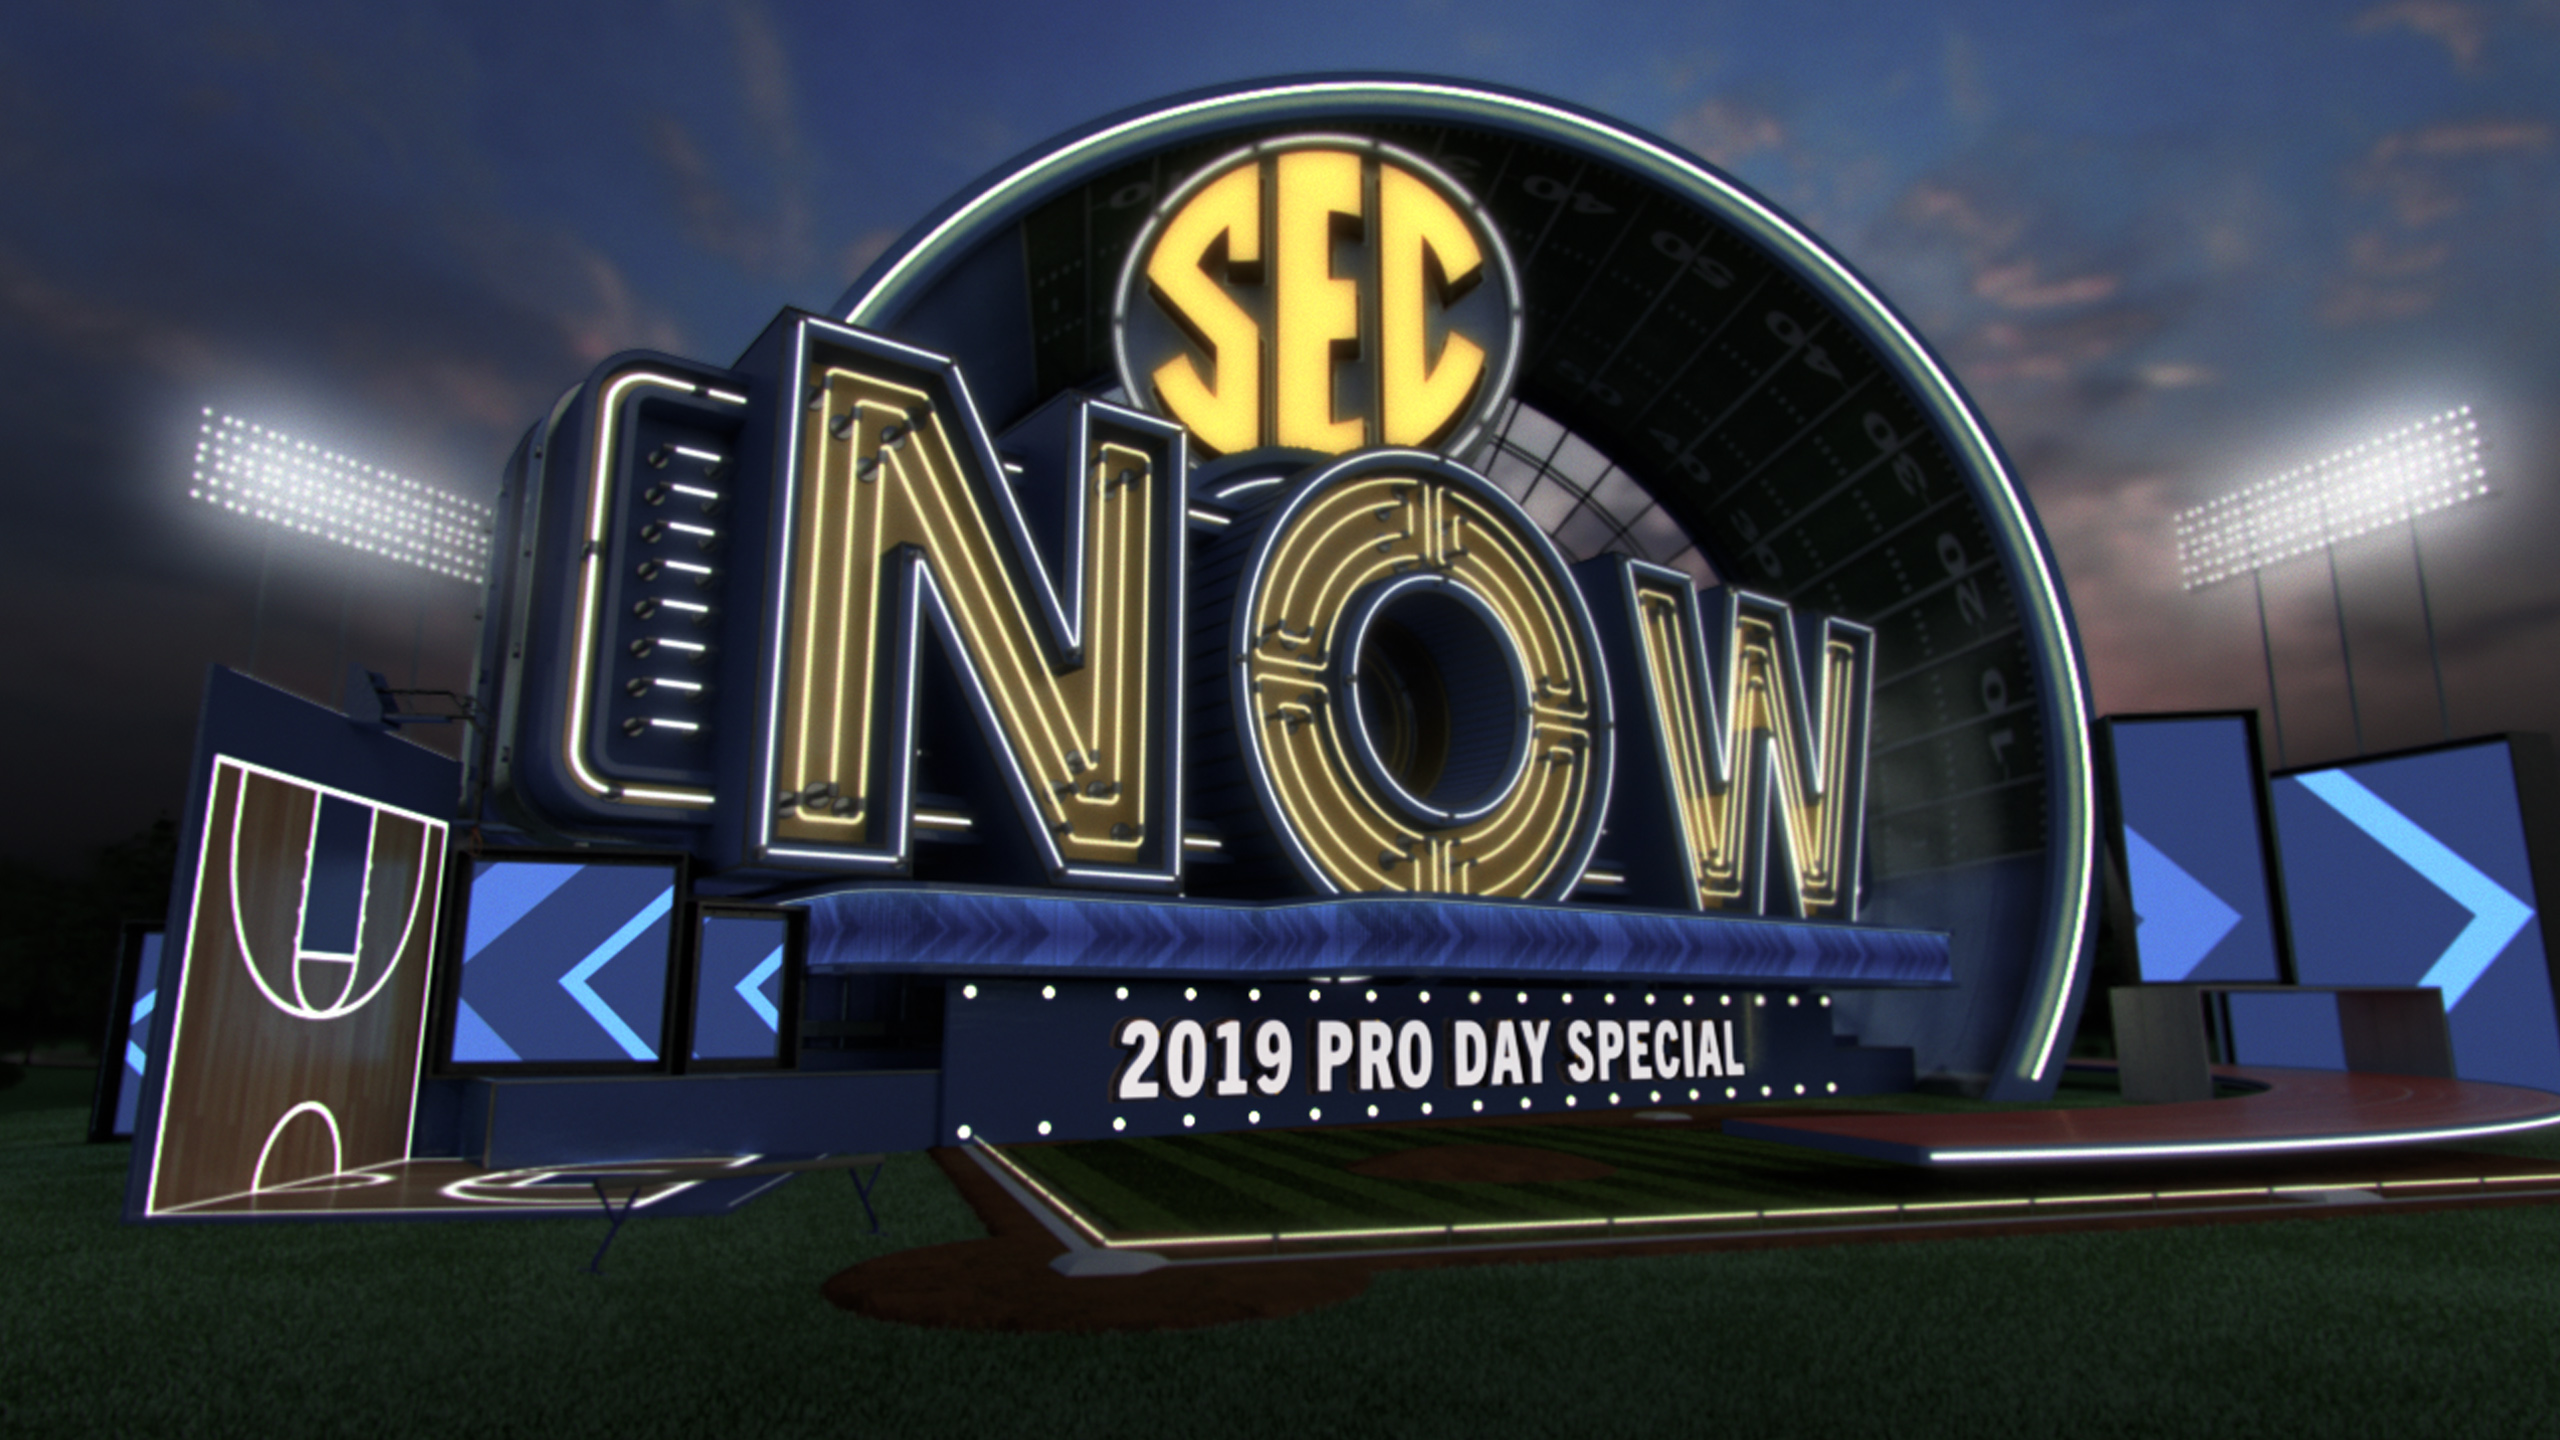 SEC Now: Pro Day Special